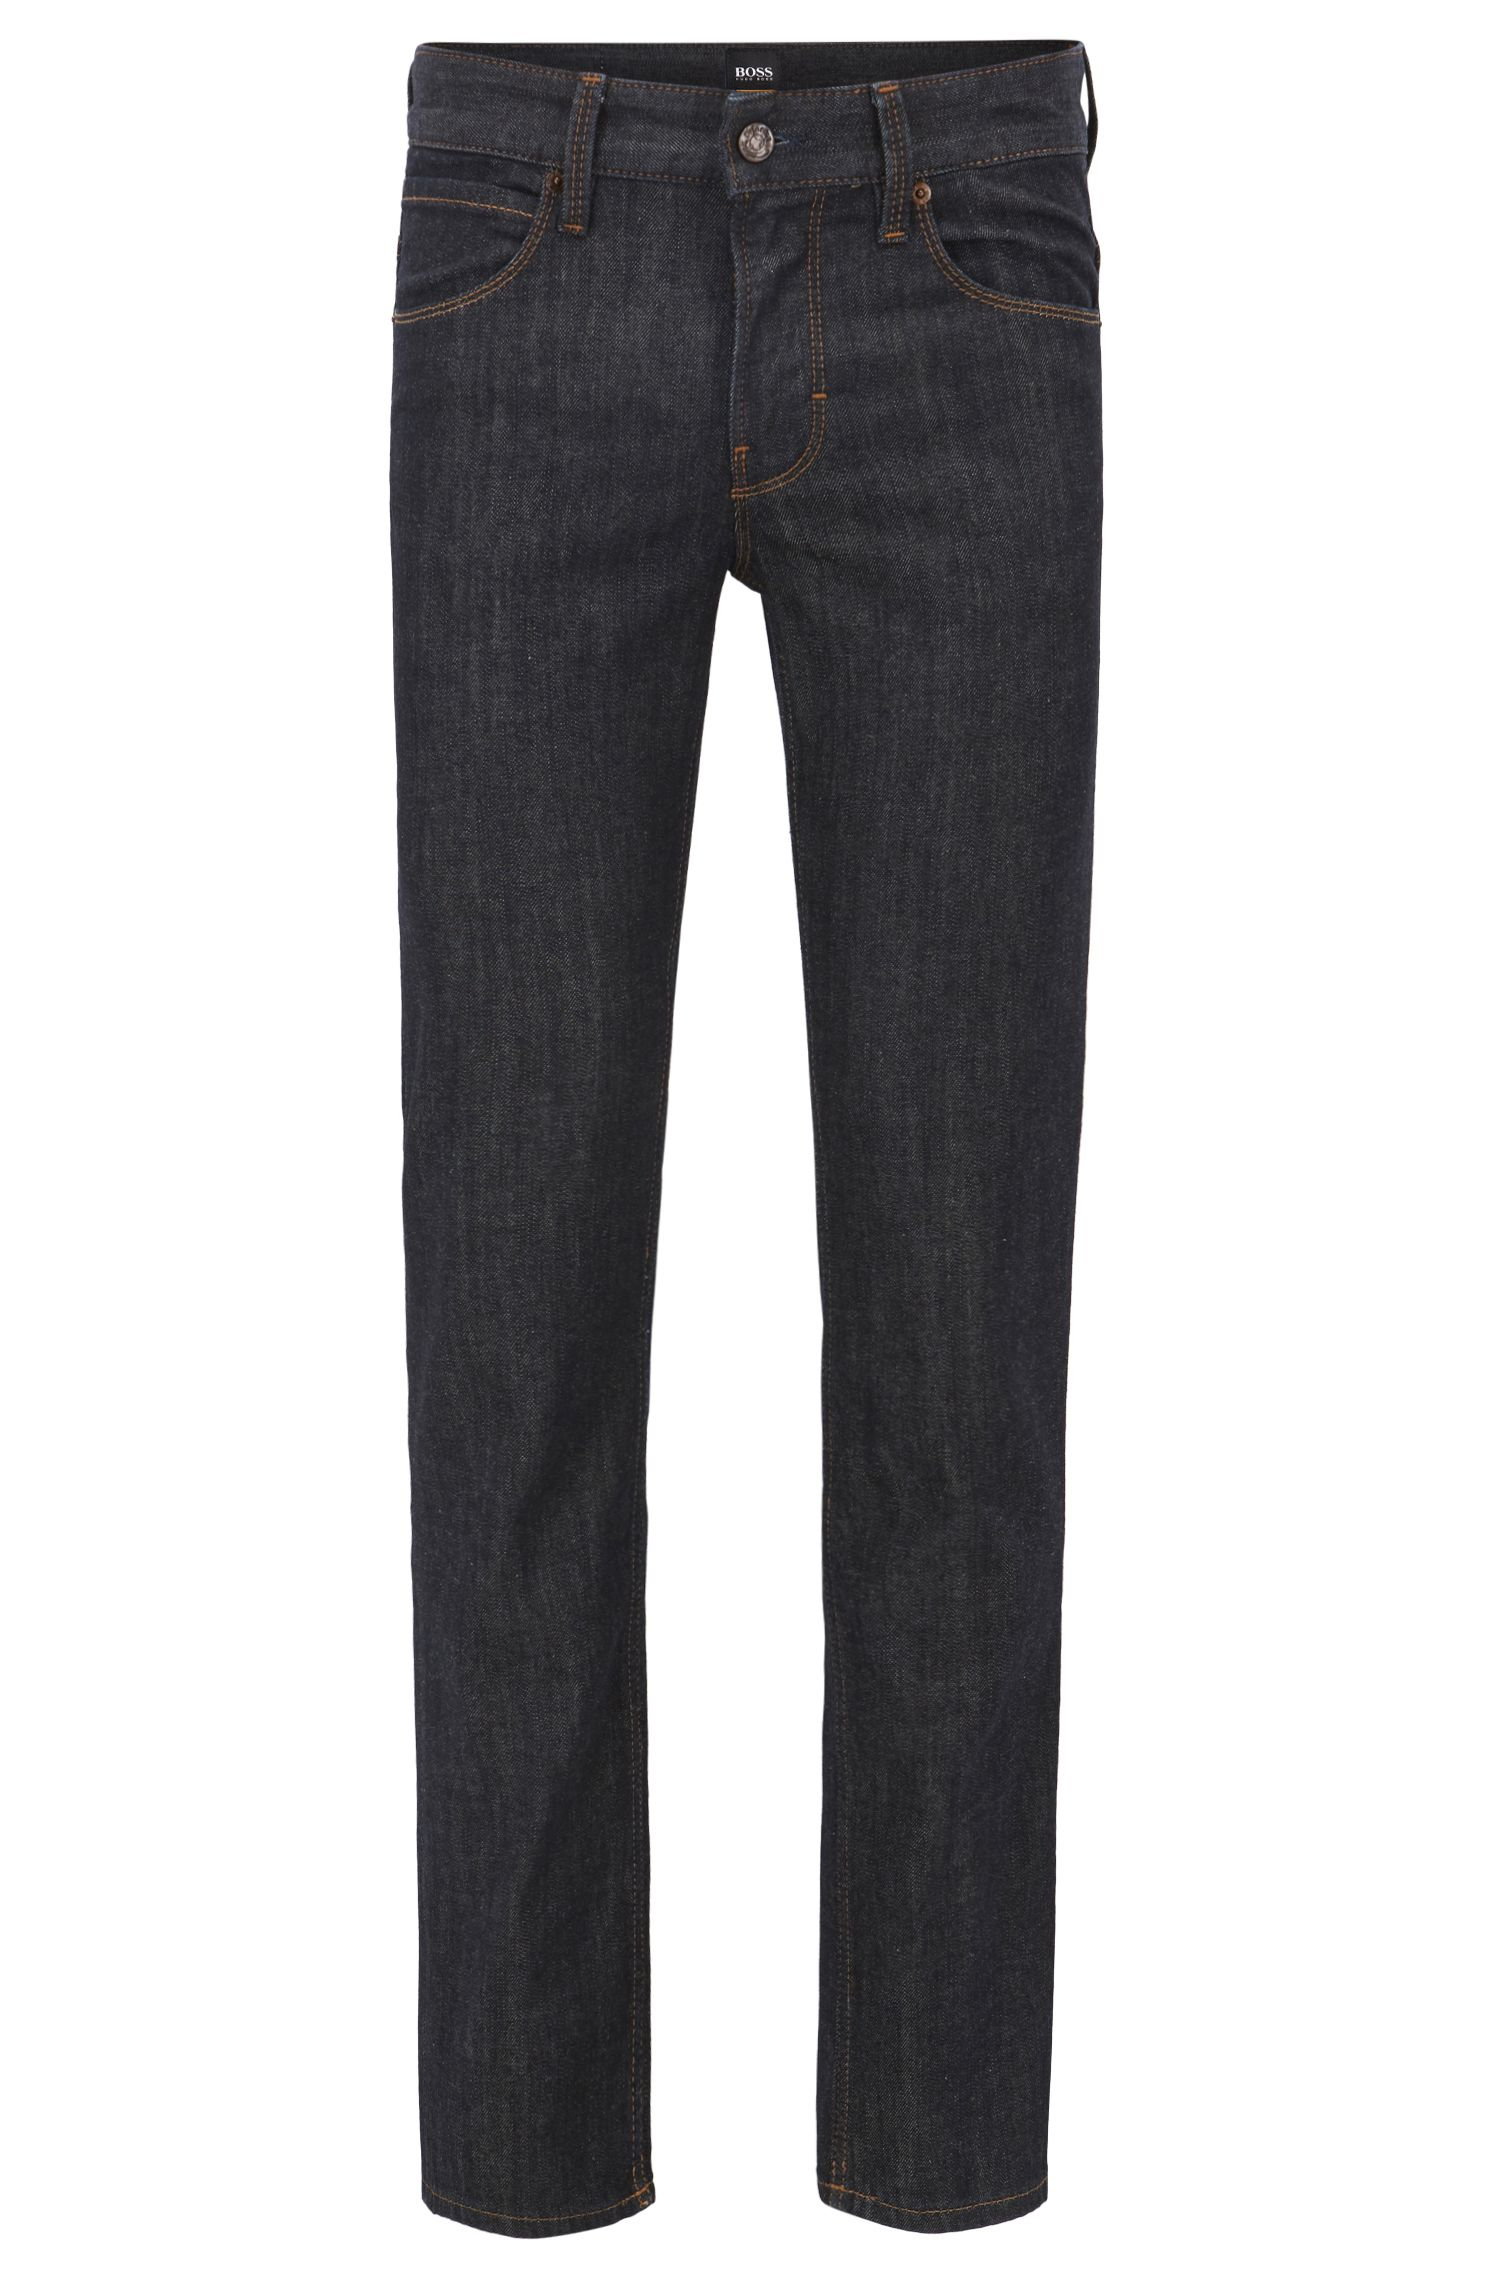 Slim fit jeans in soft stone-washed denim